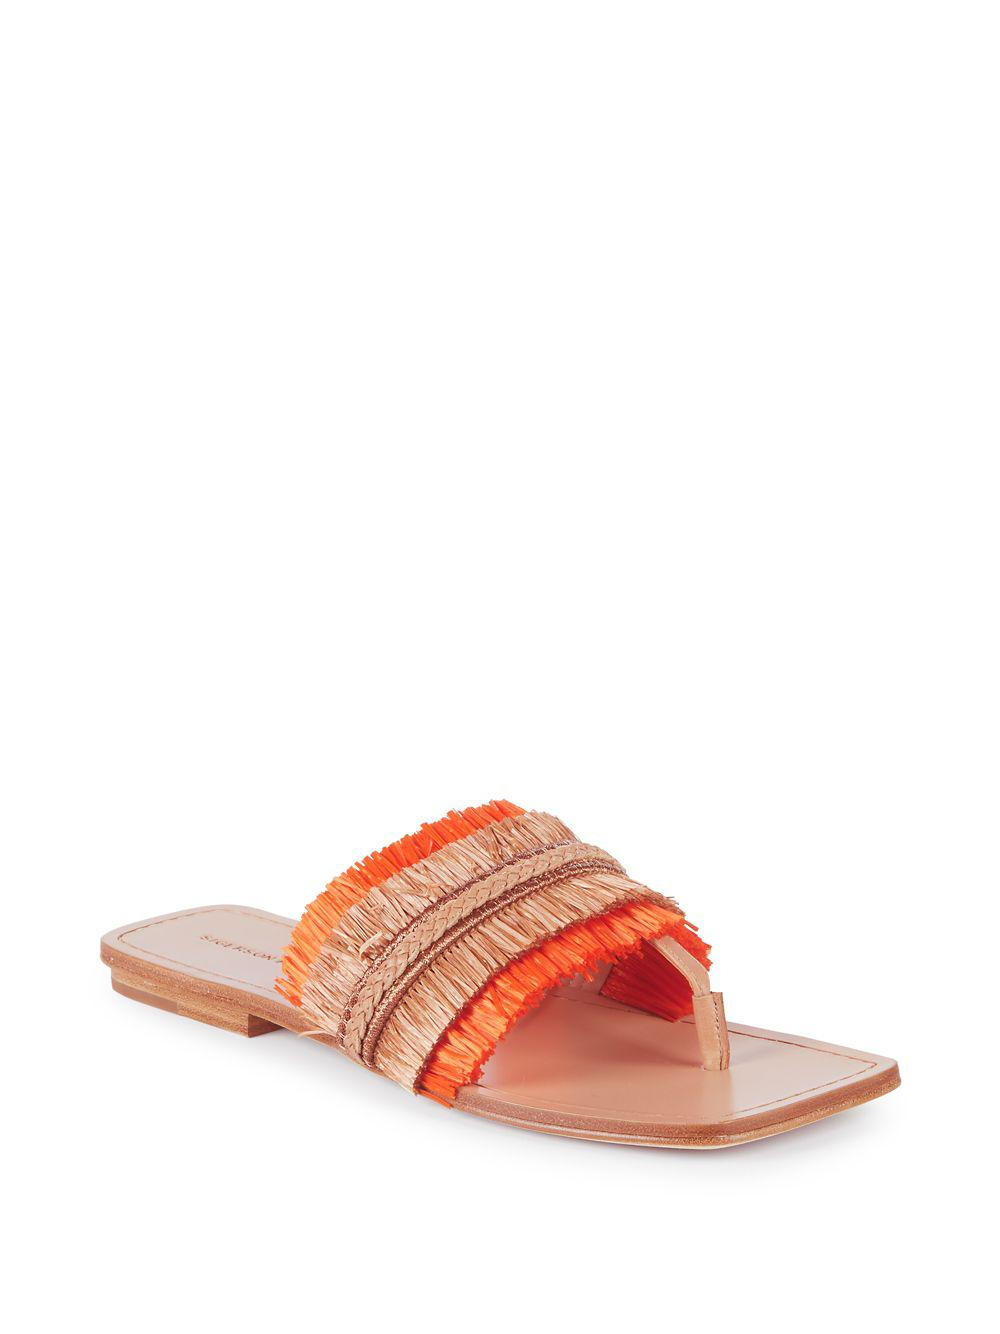 Belle by Sigerson Morrison Women's Abbe Textured Patent Leather Slide Sandals